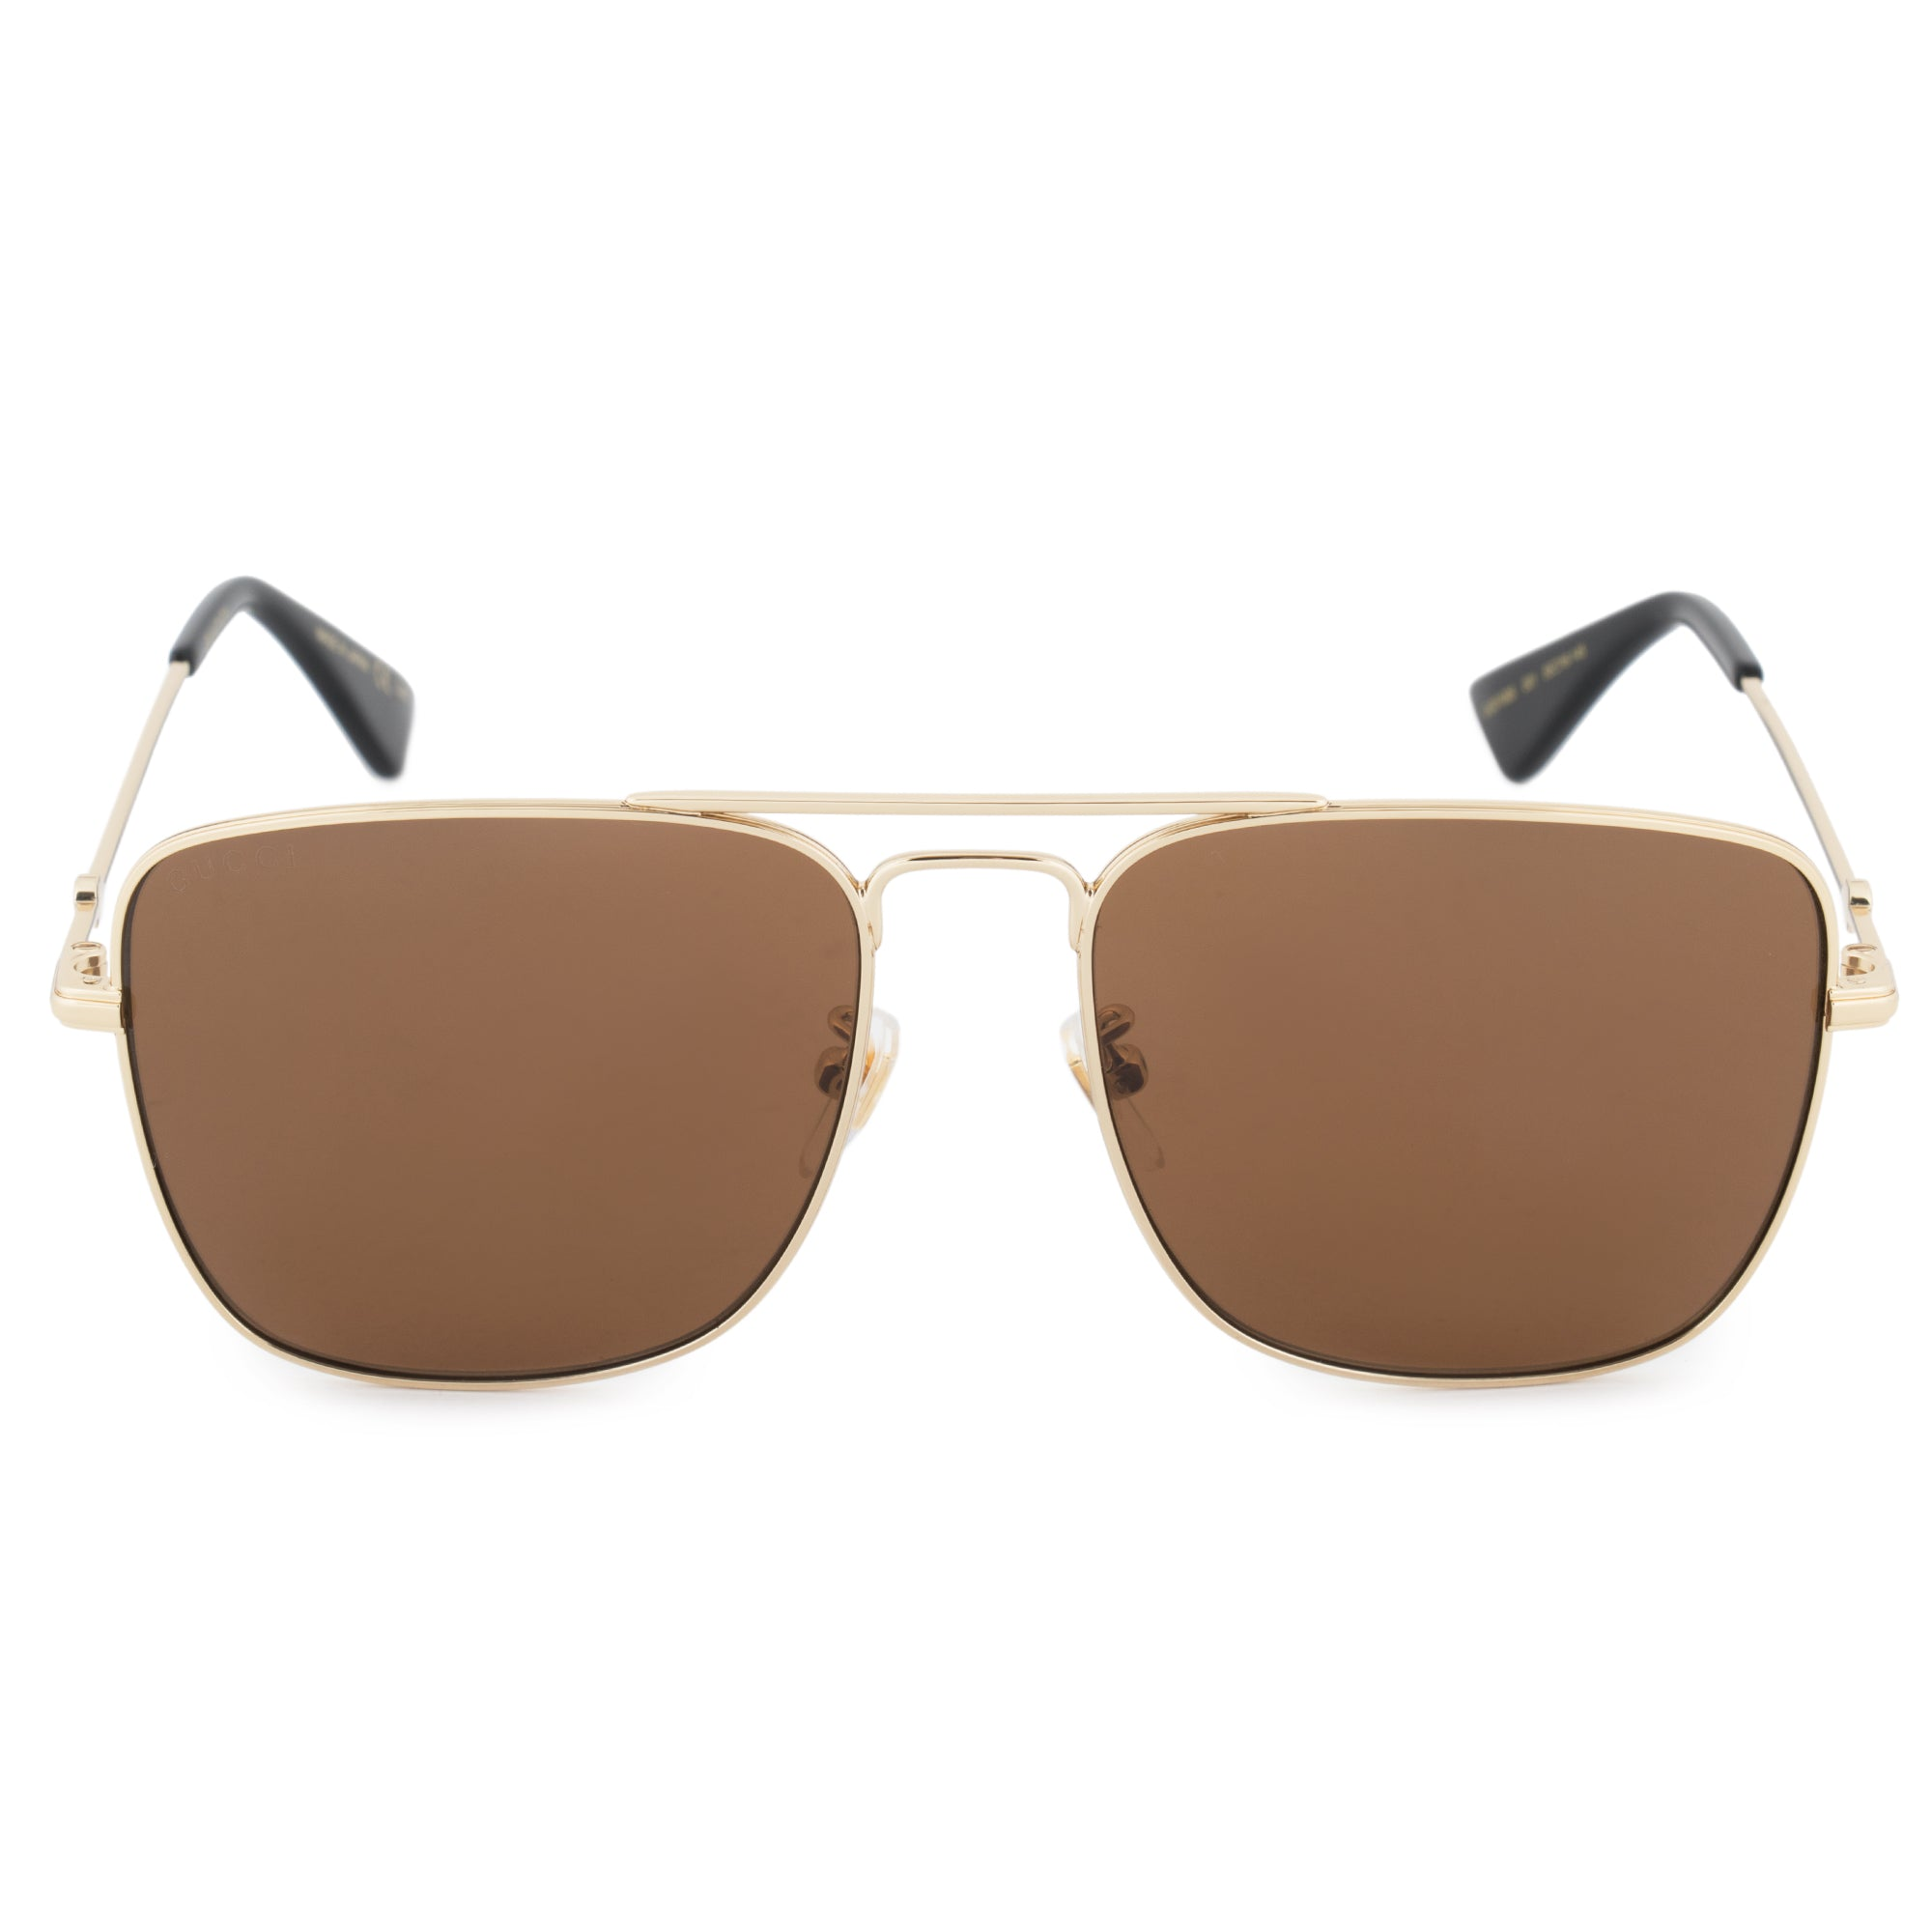 Gucci Gucci Aviator Sunglasses GG0108S 001 55